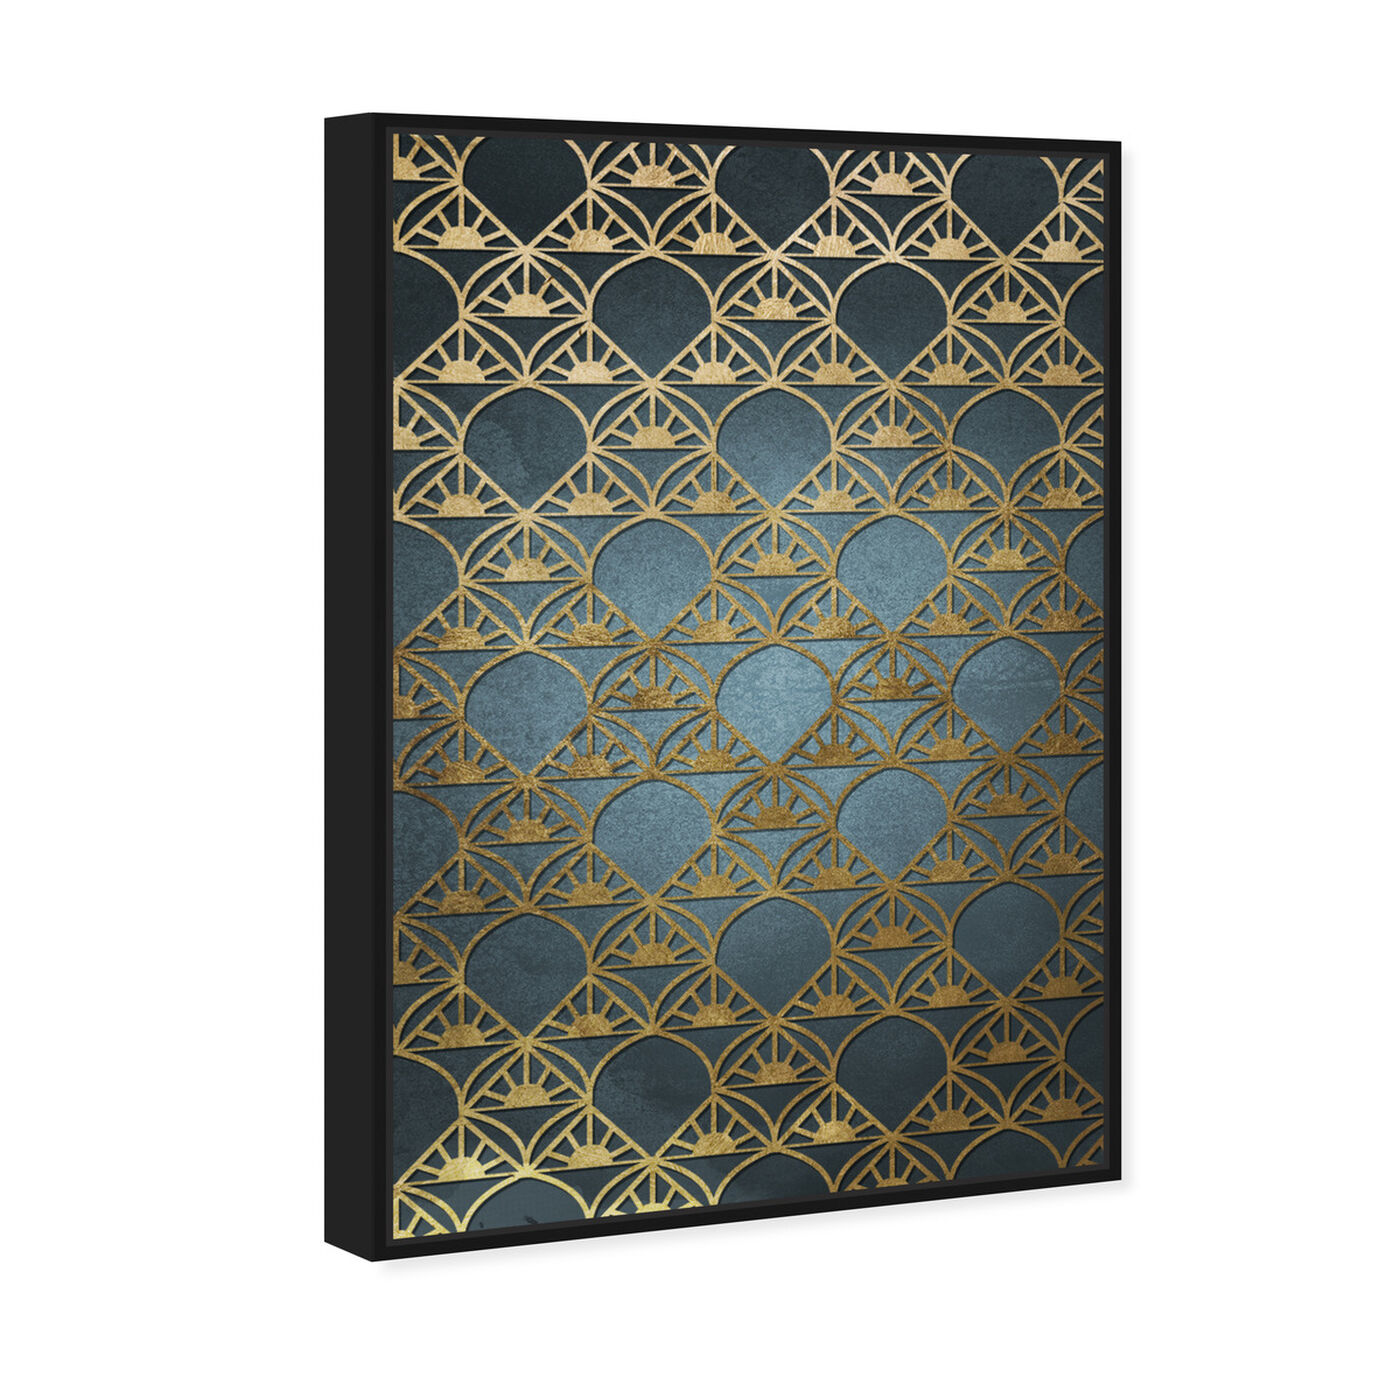 Angled view of Gold Deco featuring abstract and patterns art.